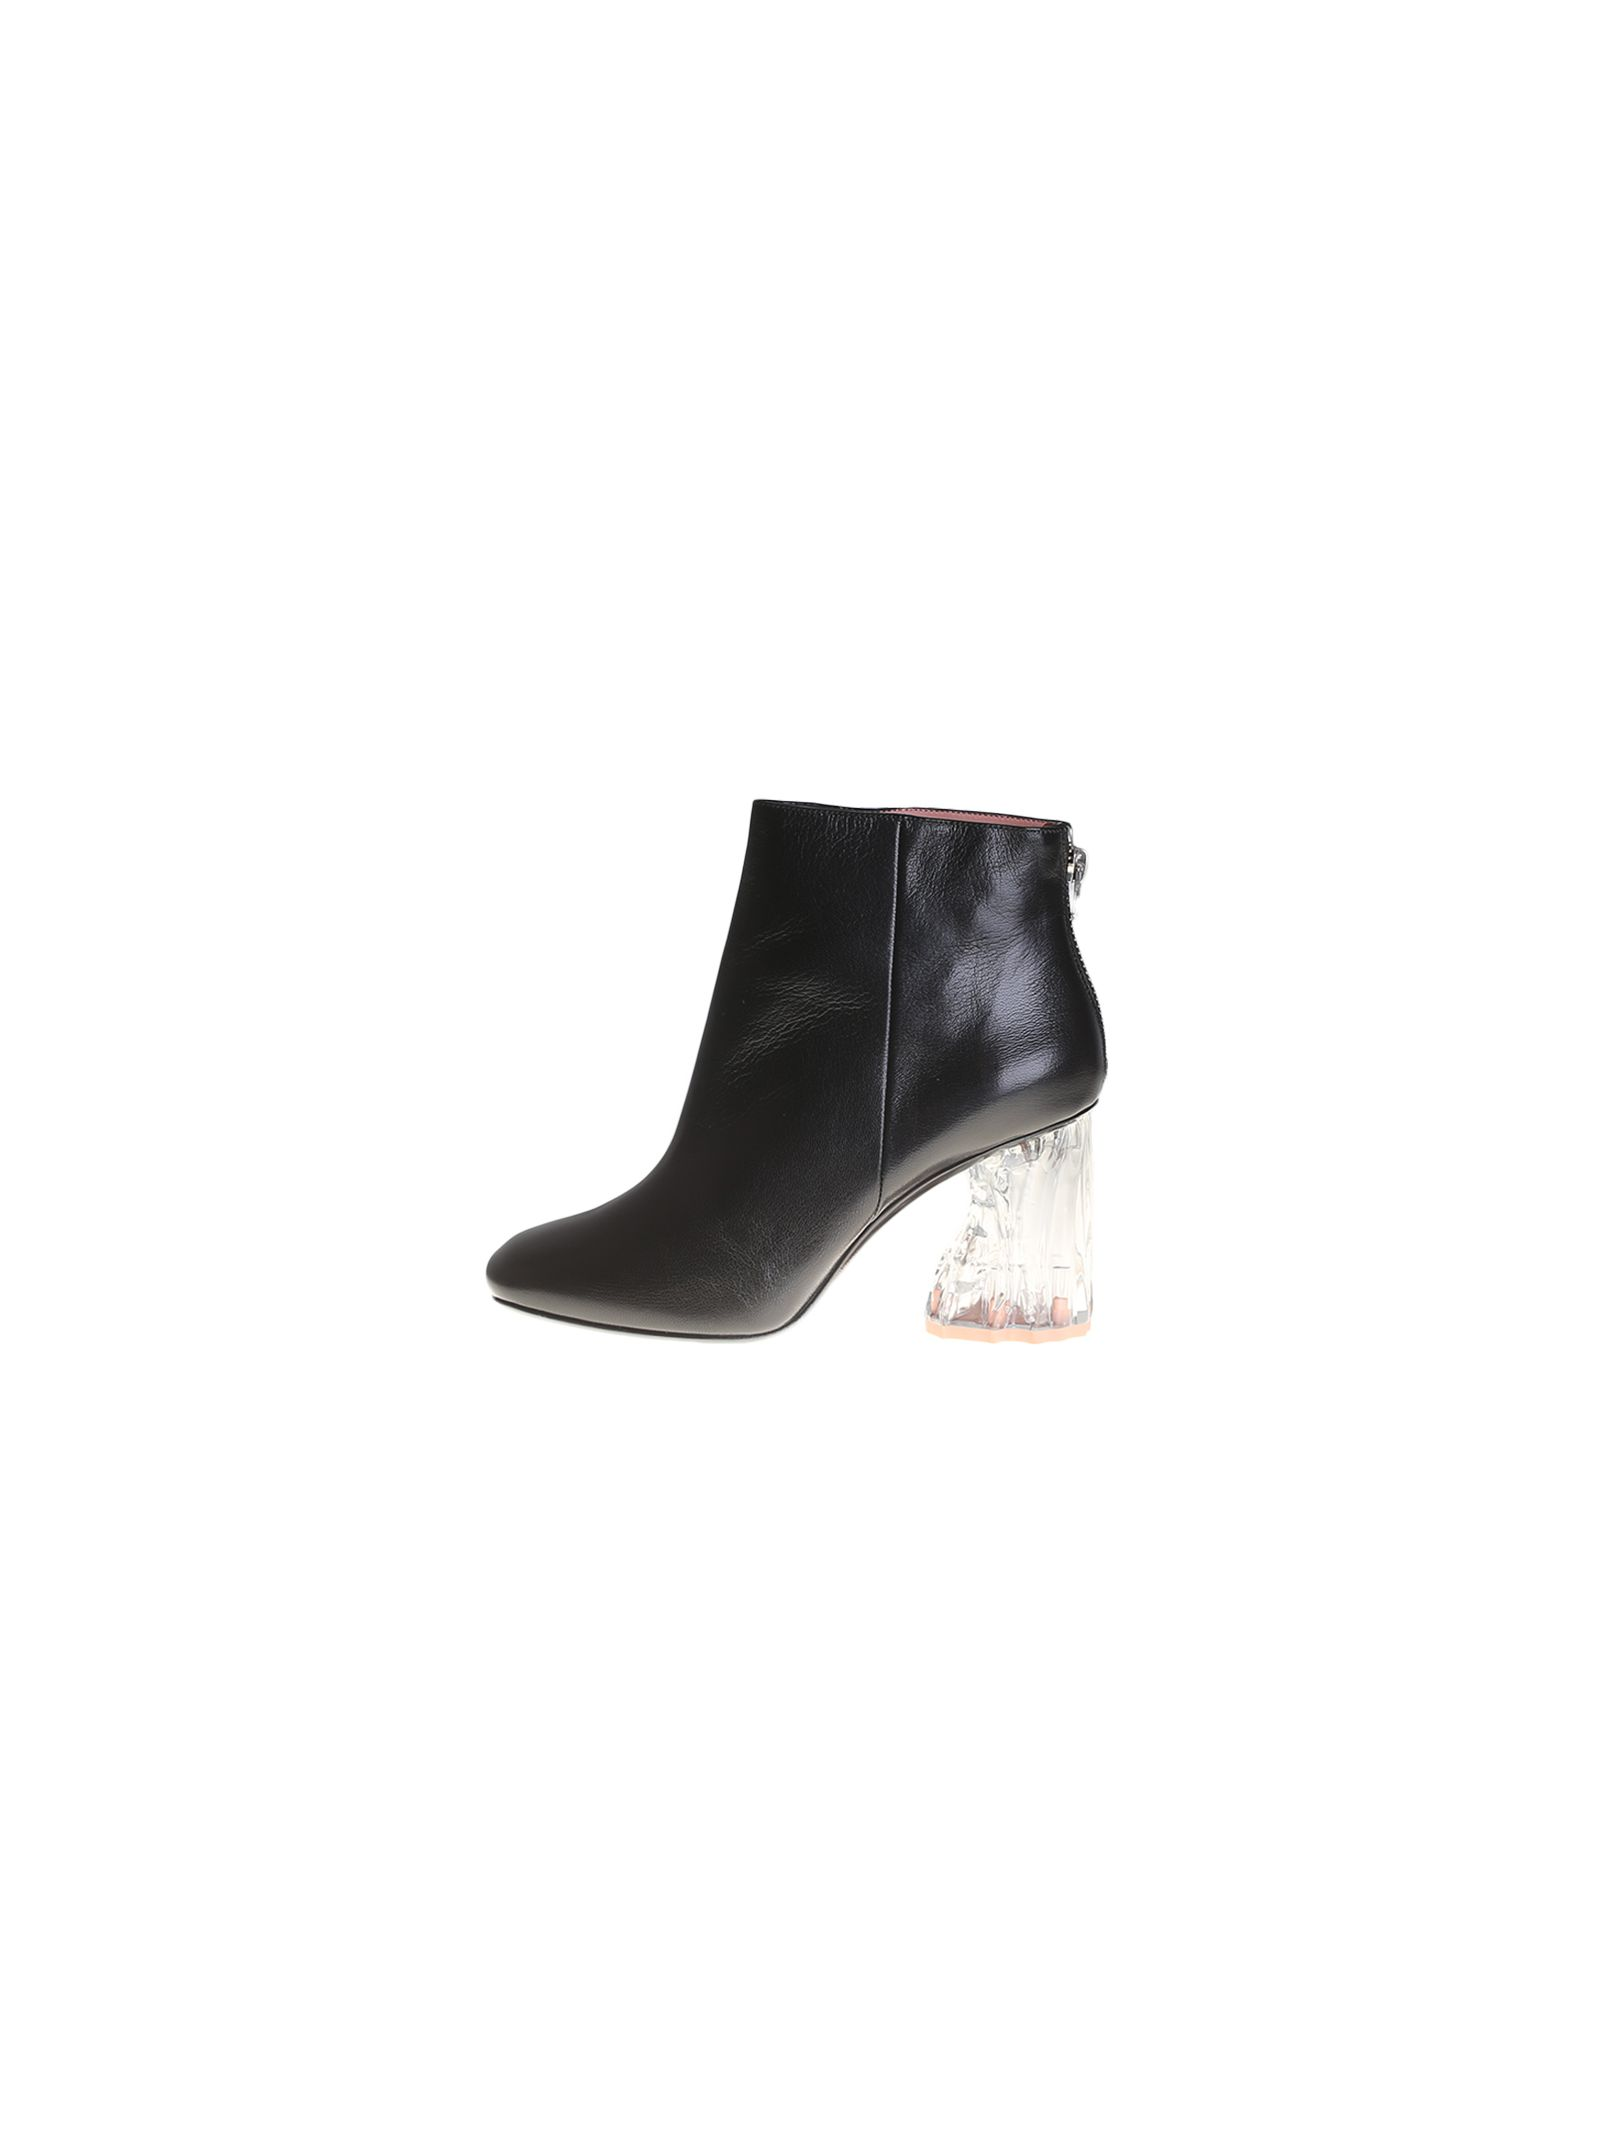 Black Ora Glass Ankle Boots - Acne Studios - Stan